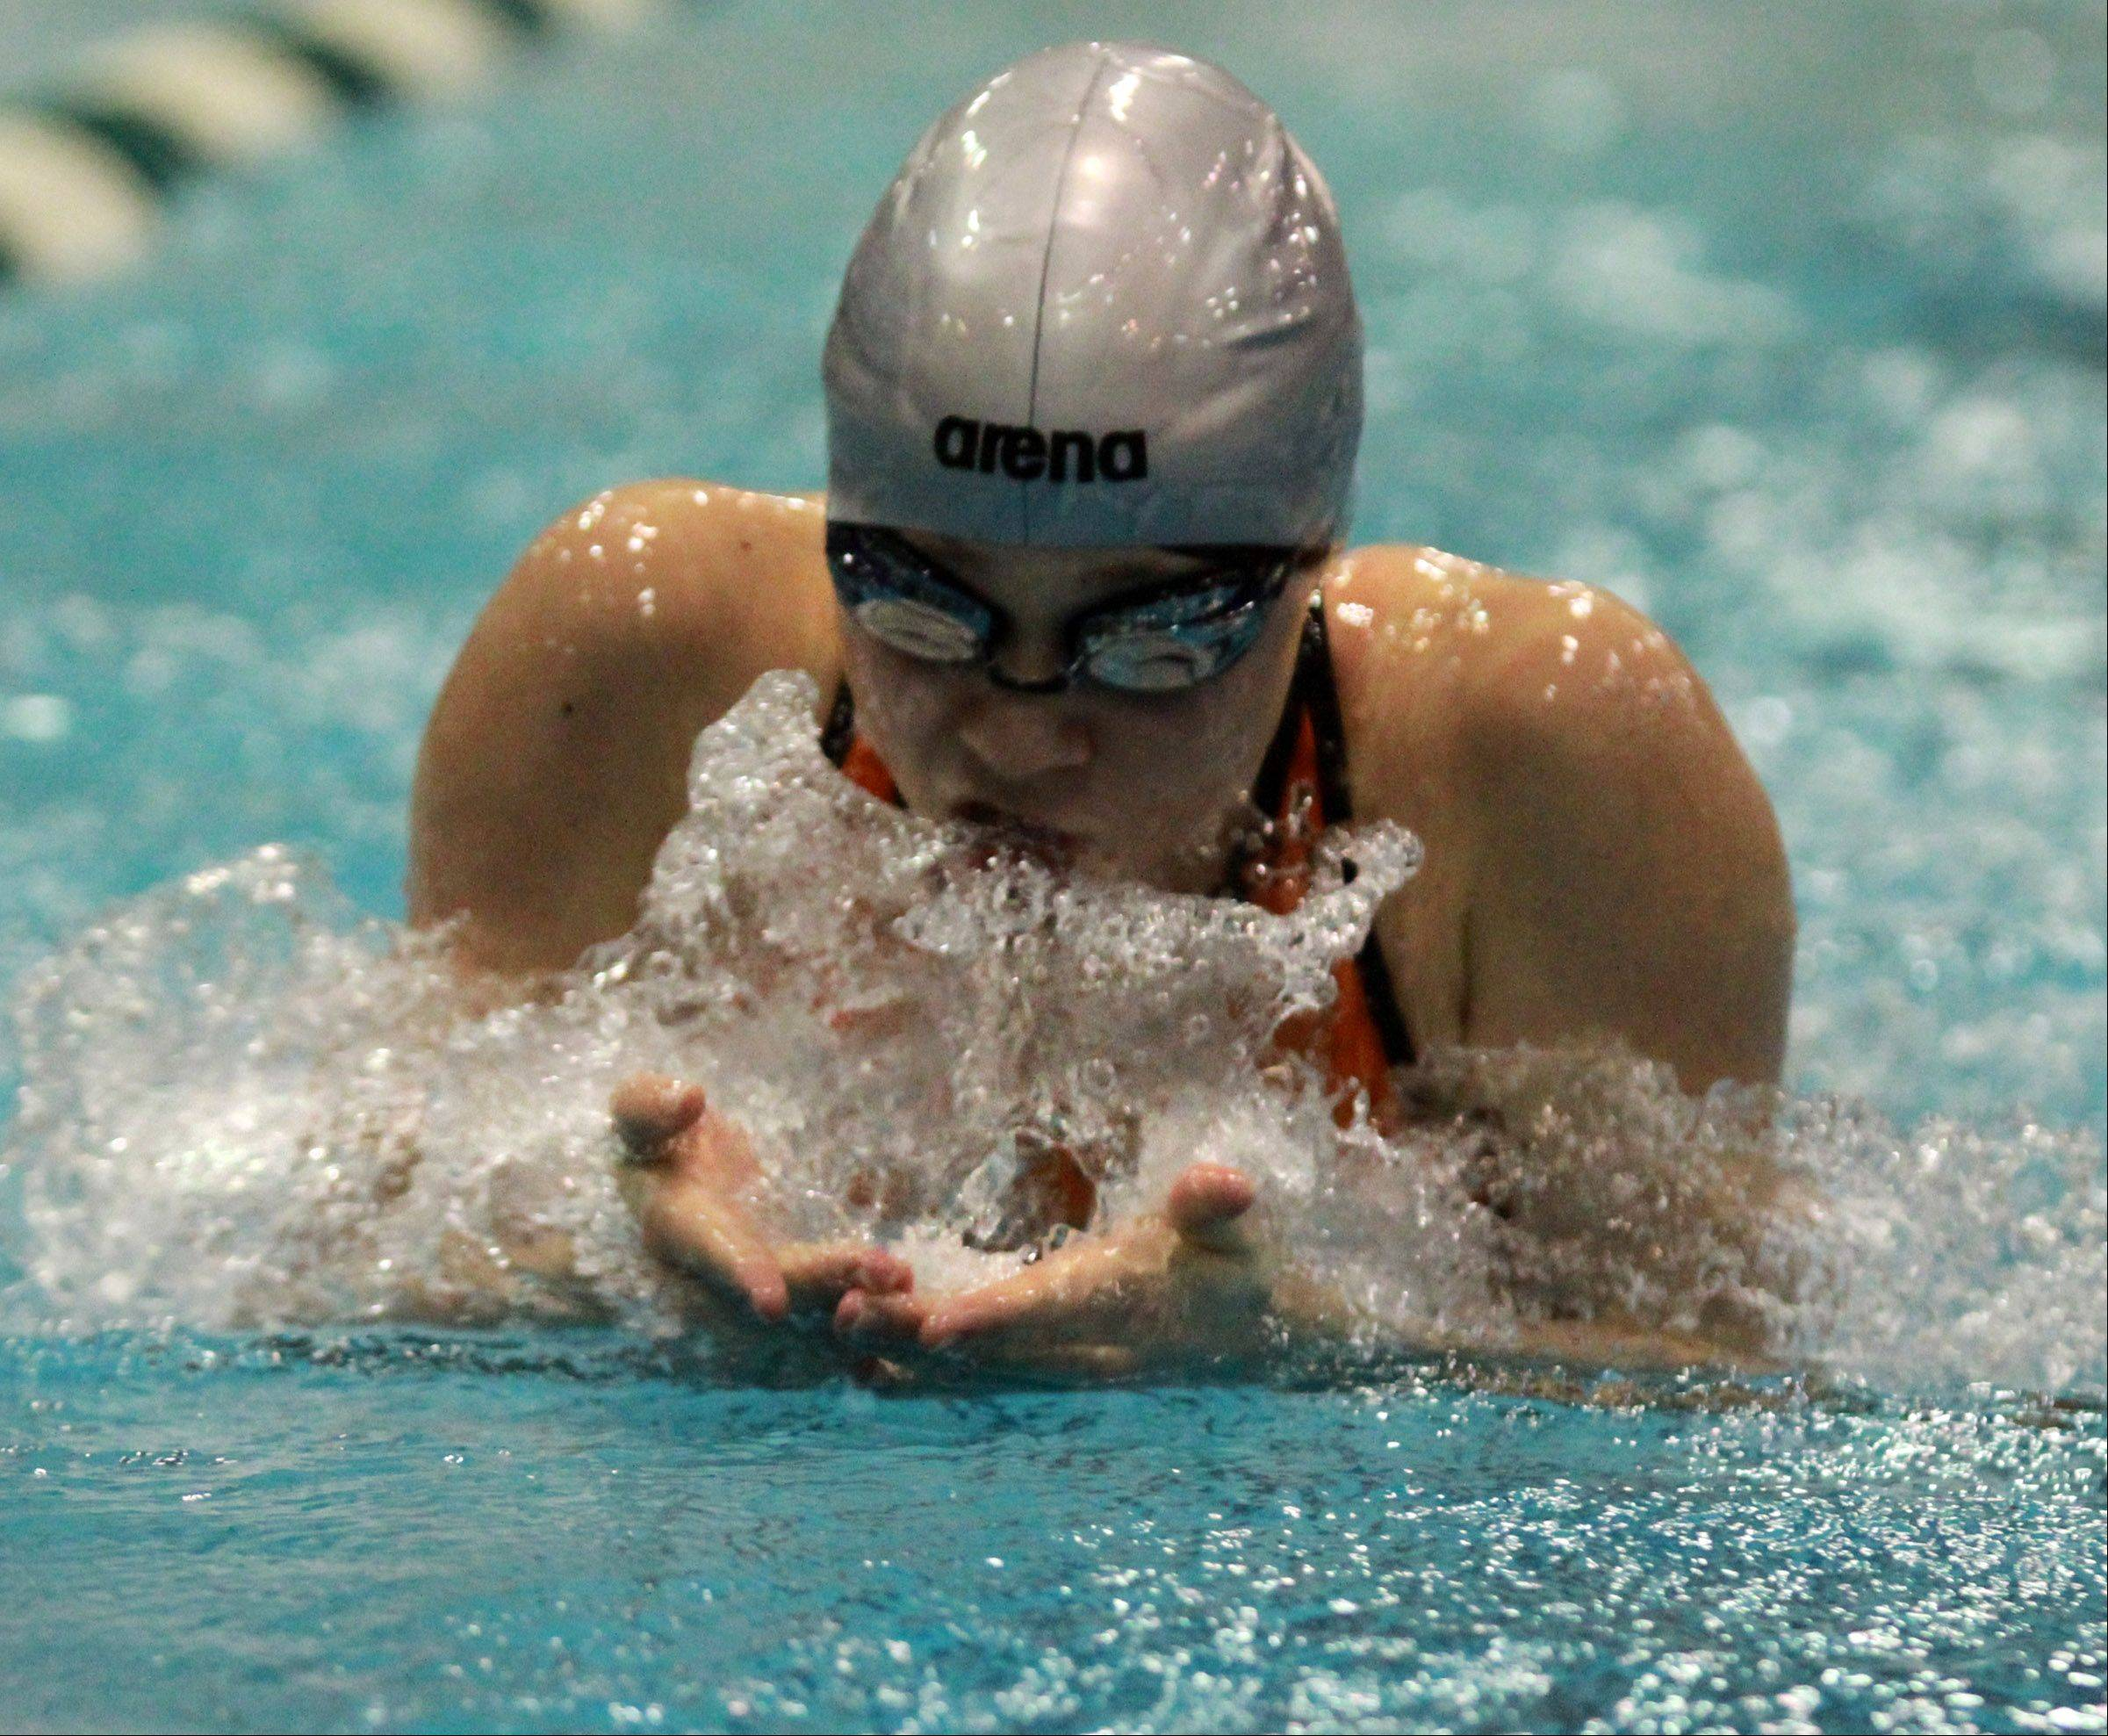 Libertyville's Macey Neubauer swims the second leg of the 200 medley relay at the girls swimming state finals on Saturday at New Trier, where the team placed ninth.